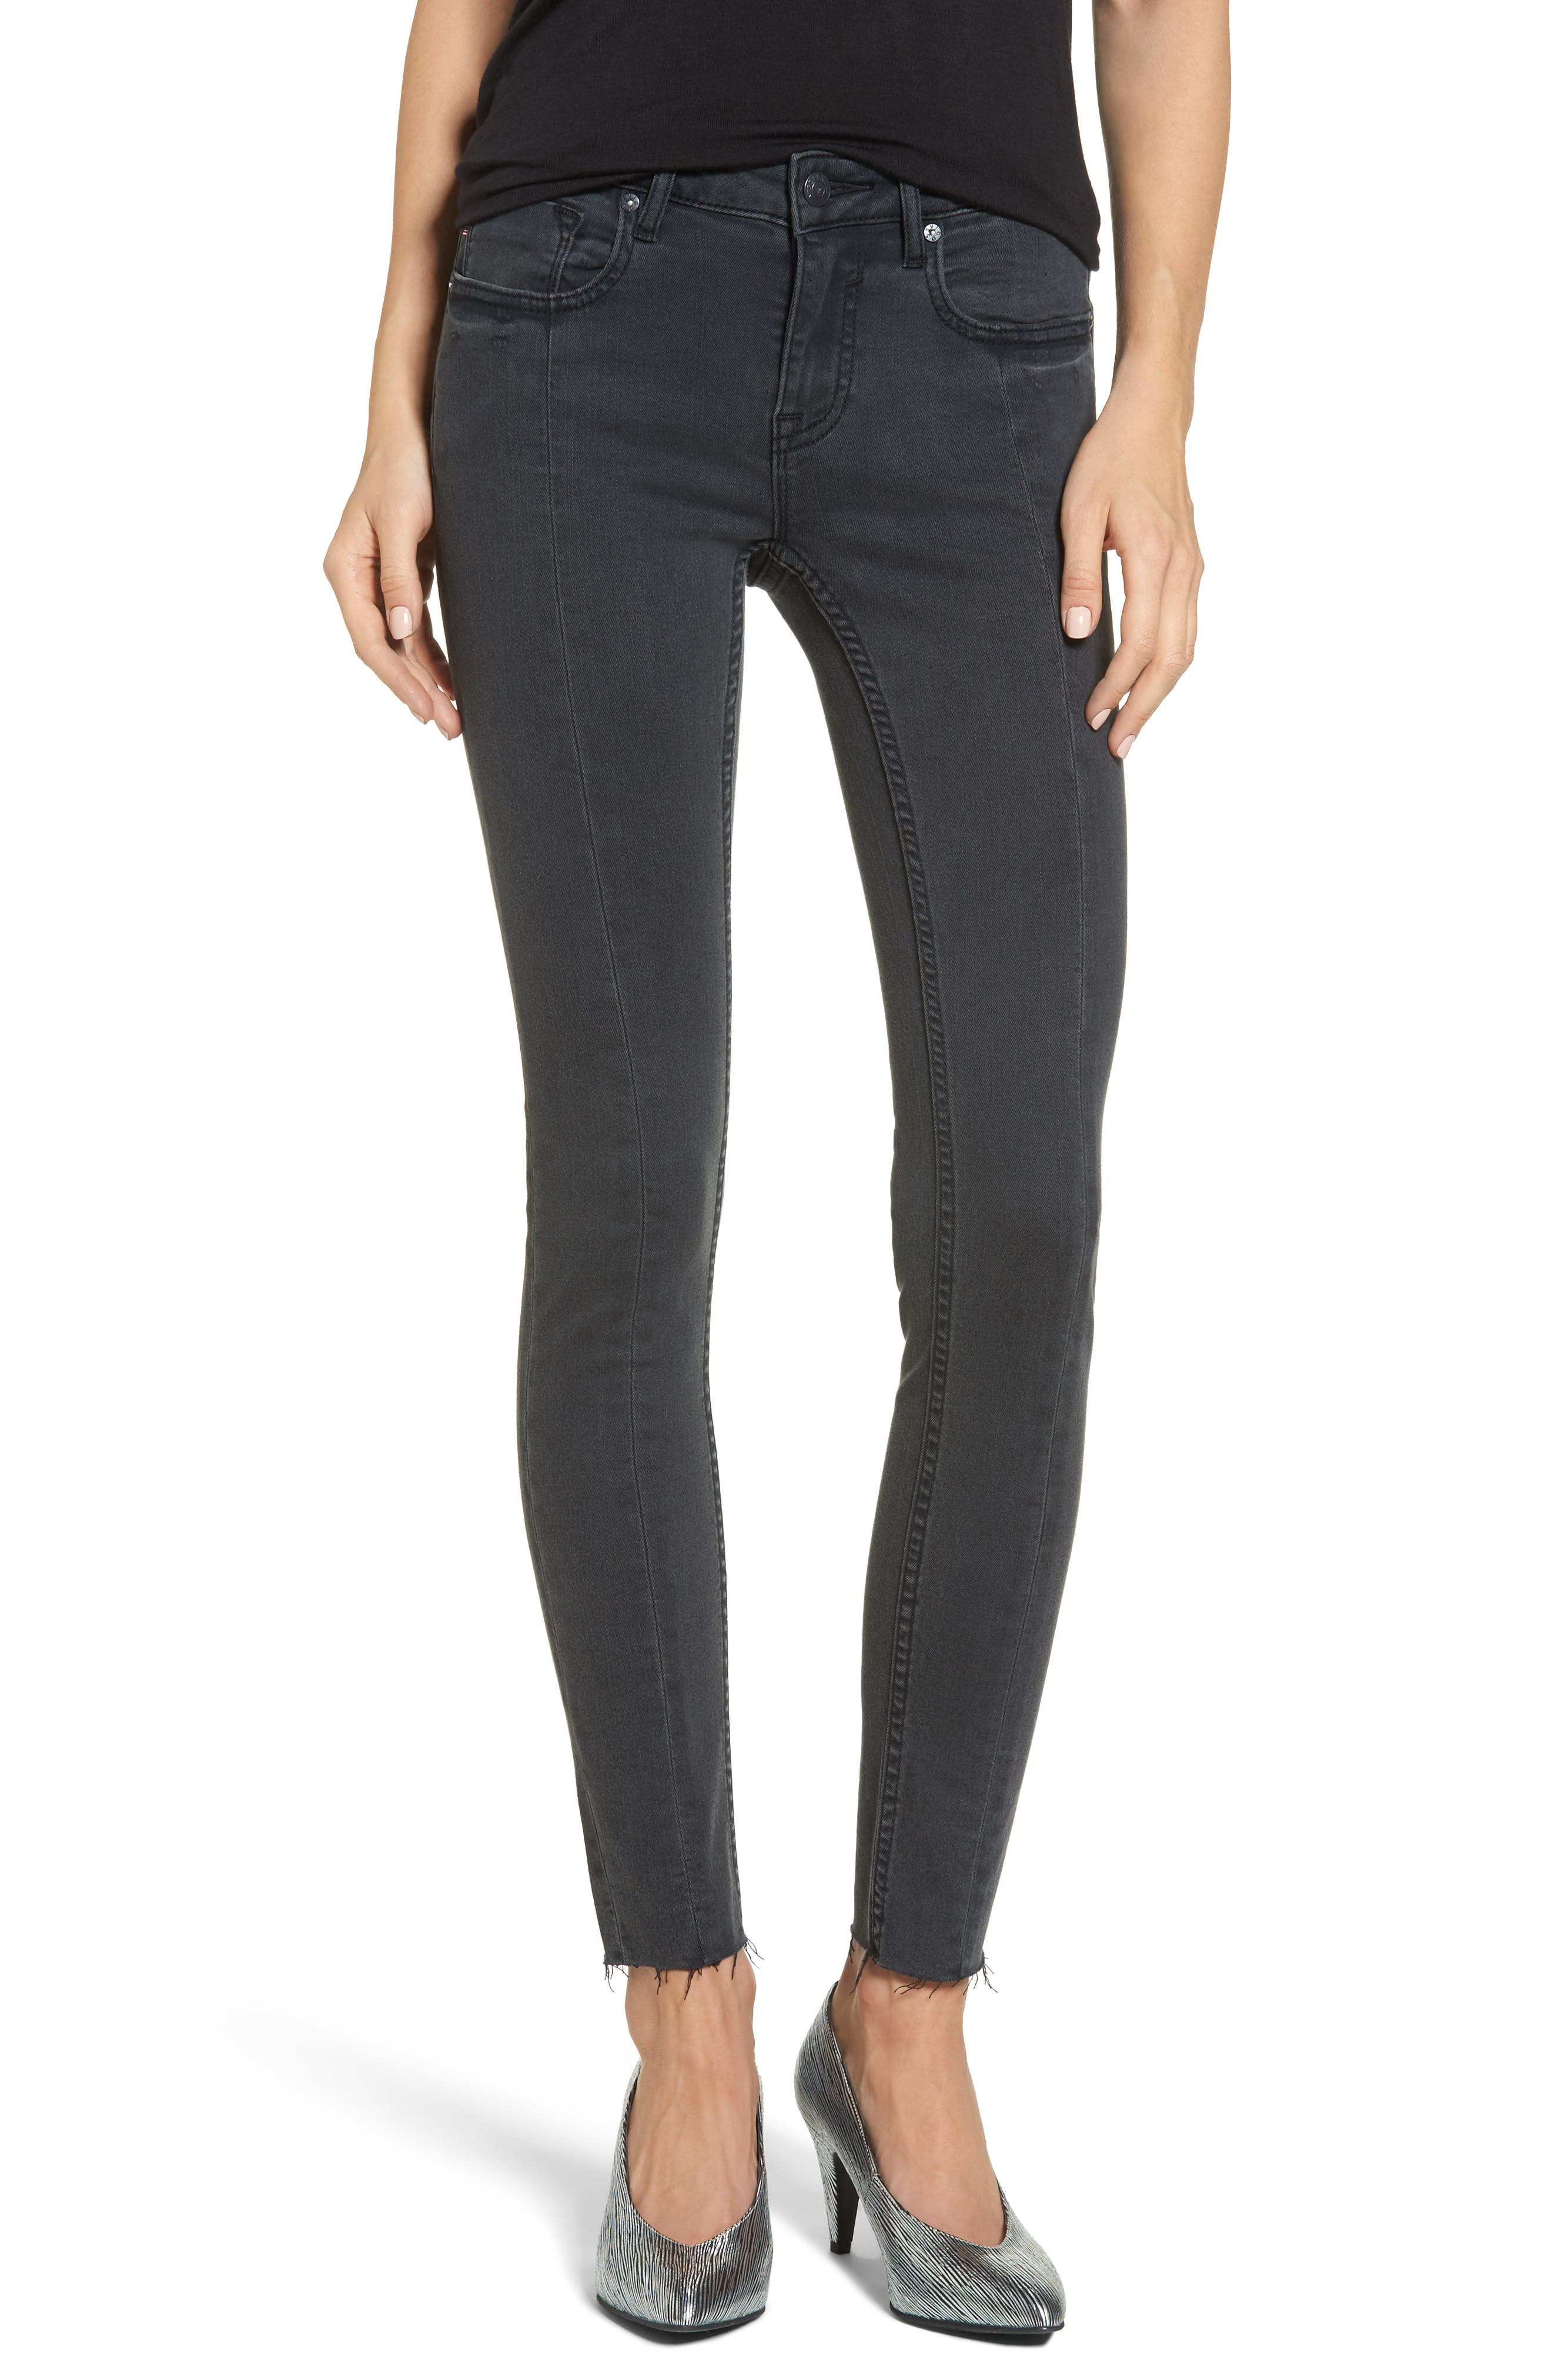 Jagger Front Seam Skinny Jeans,                             Main thumbnail 1, color,                             Washed Black